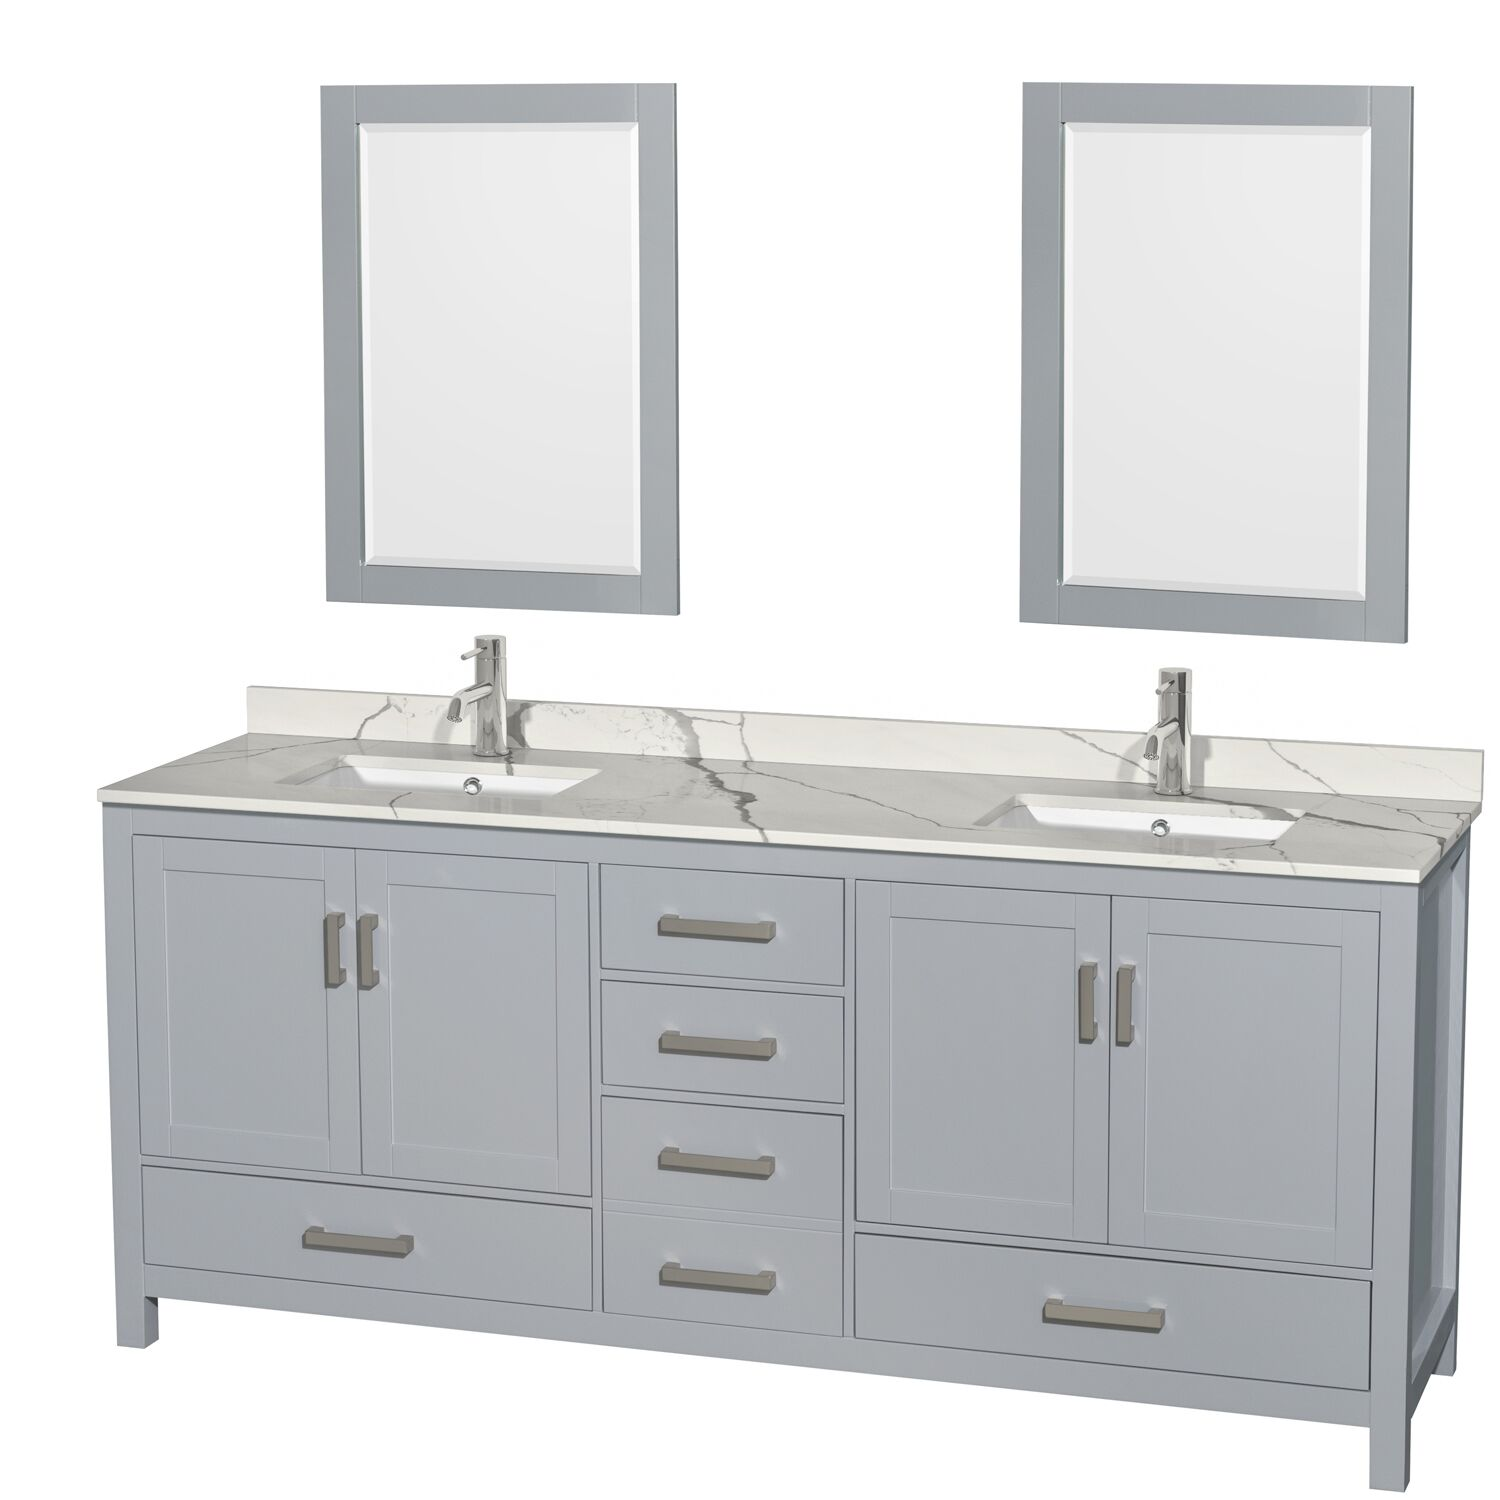 "80"" Double Bathroom Vanity with Color, Countertop, Mirror and Medicine Cabinet Options"